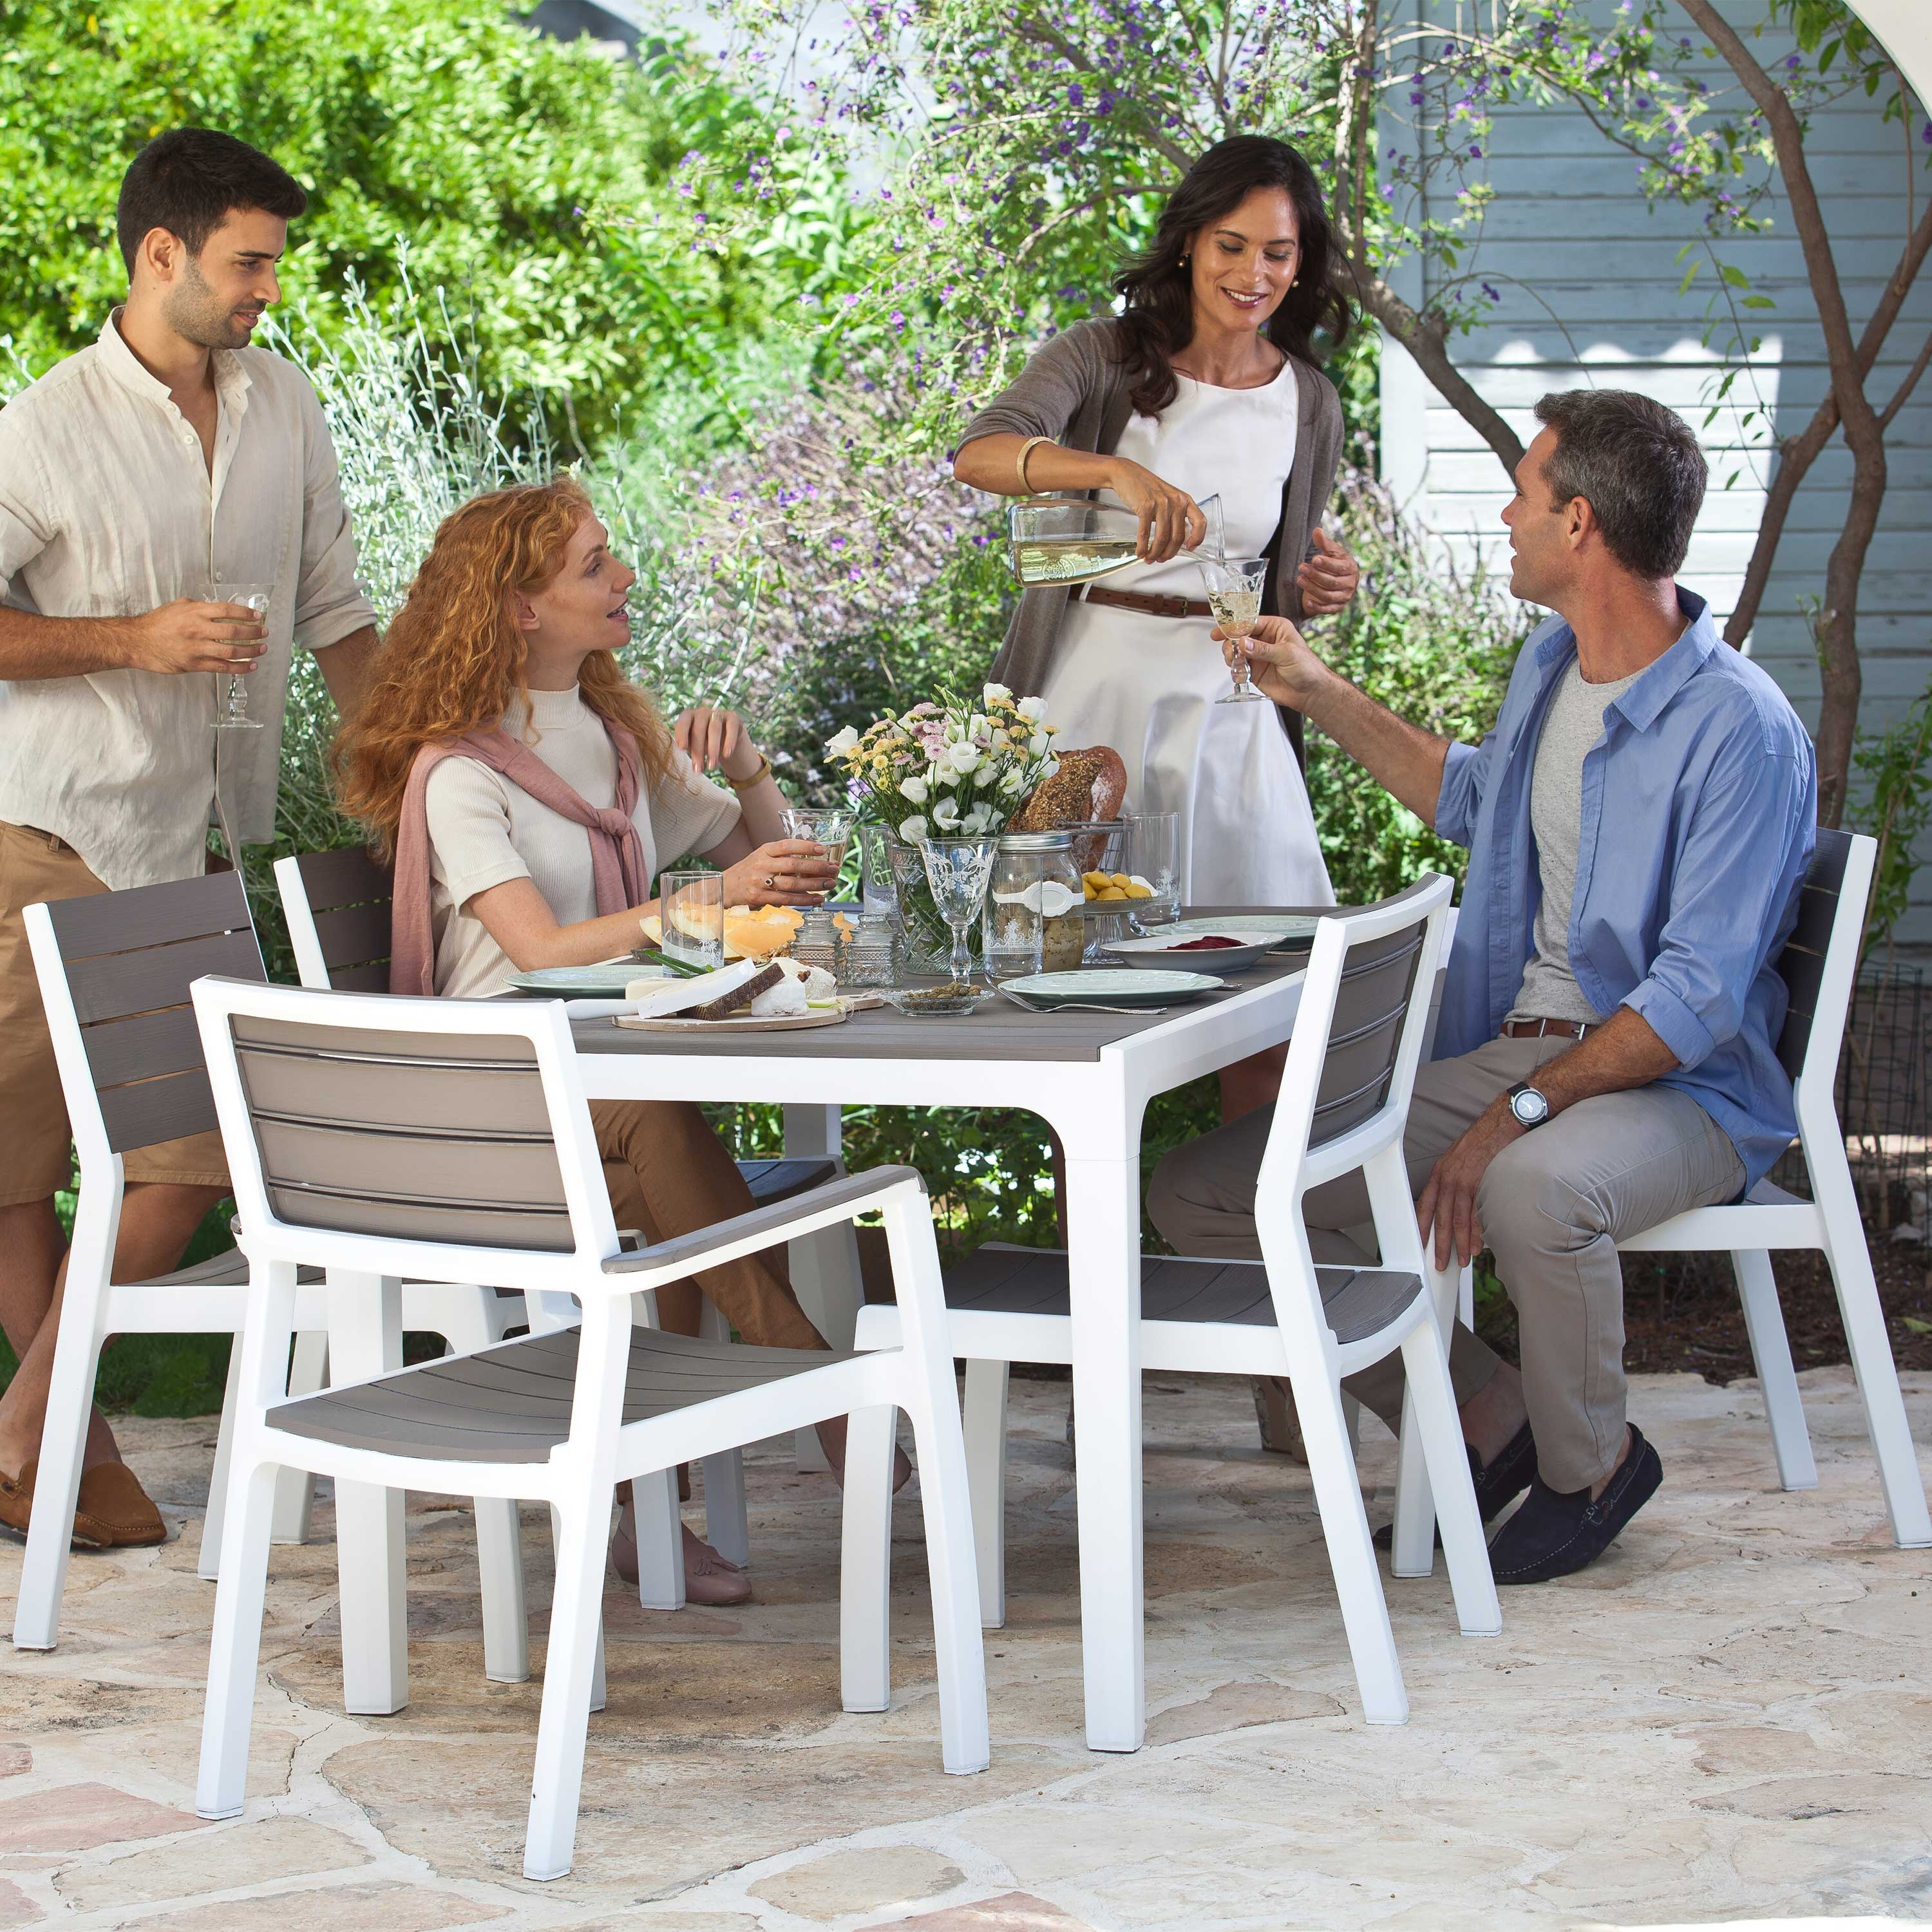 Keter Harmony Cappuccino 6 Seat Dining Set